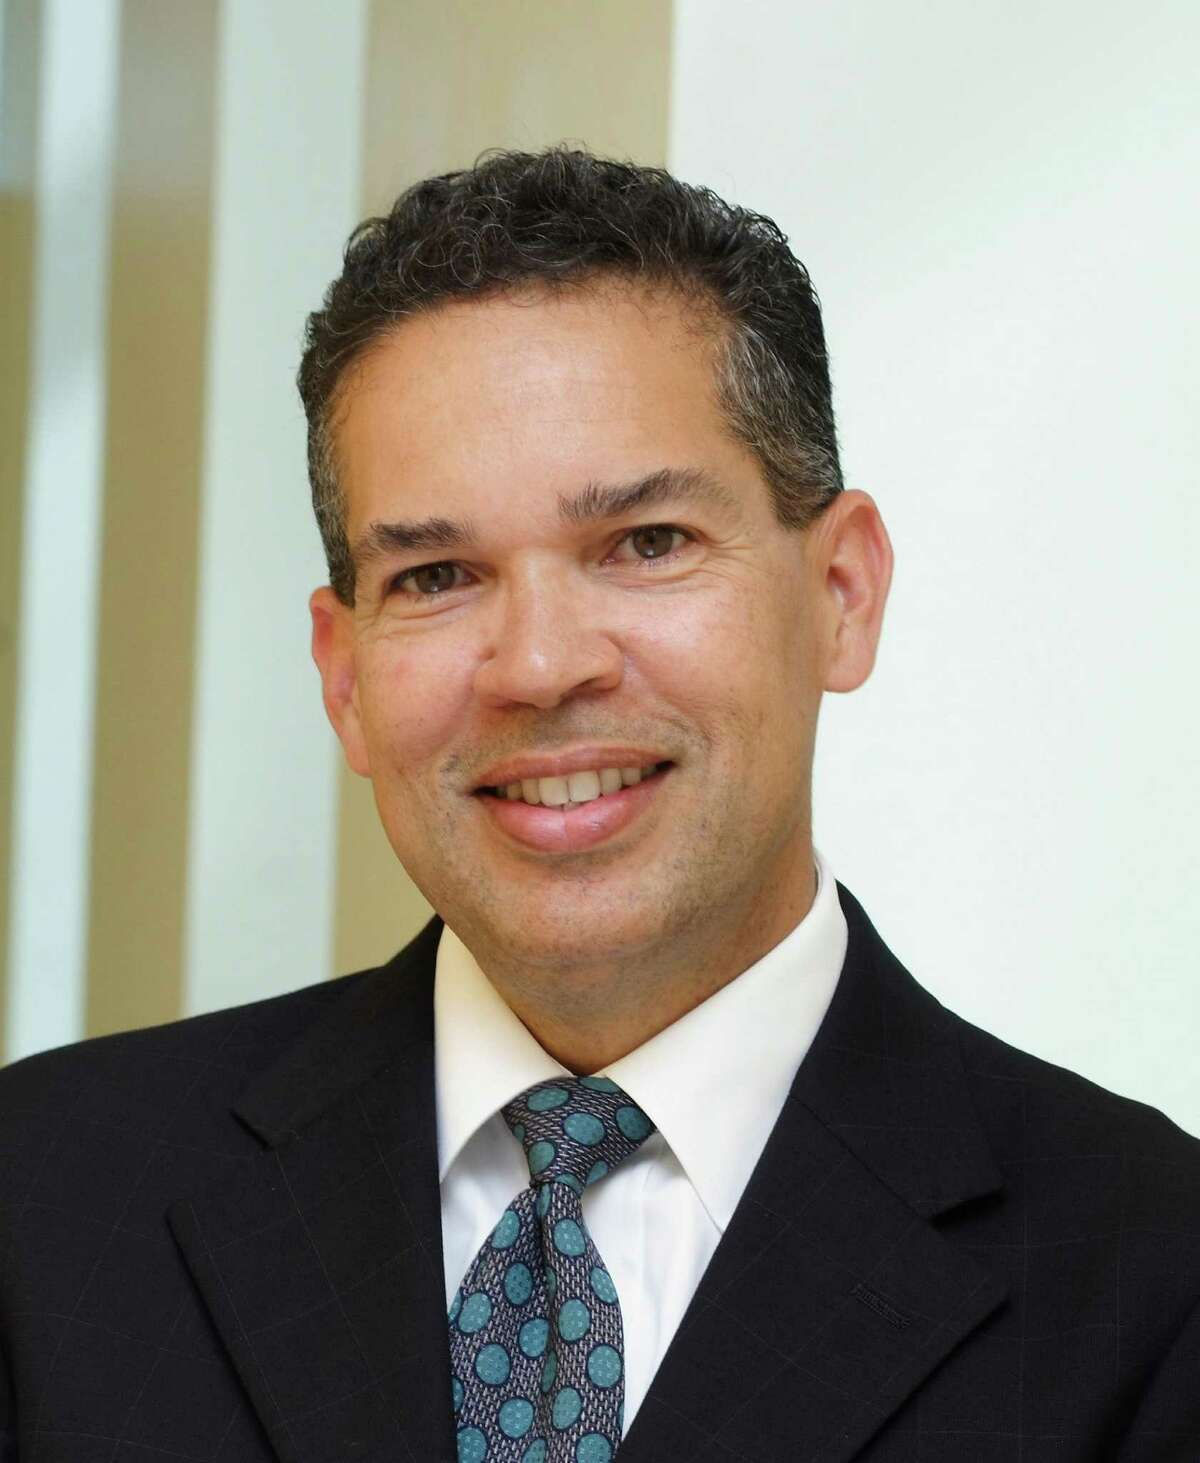 William T. Harris has been named president and chief executive officer of Space Center Houston, Manned Space Flight Education Foundation.